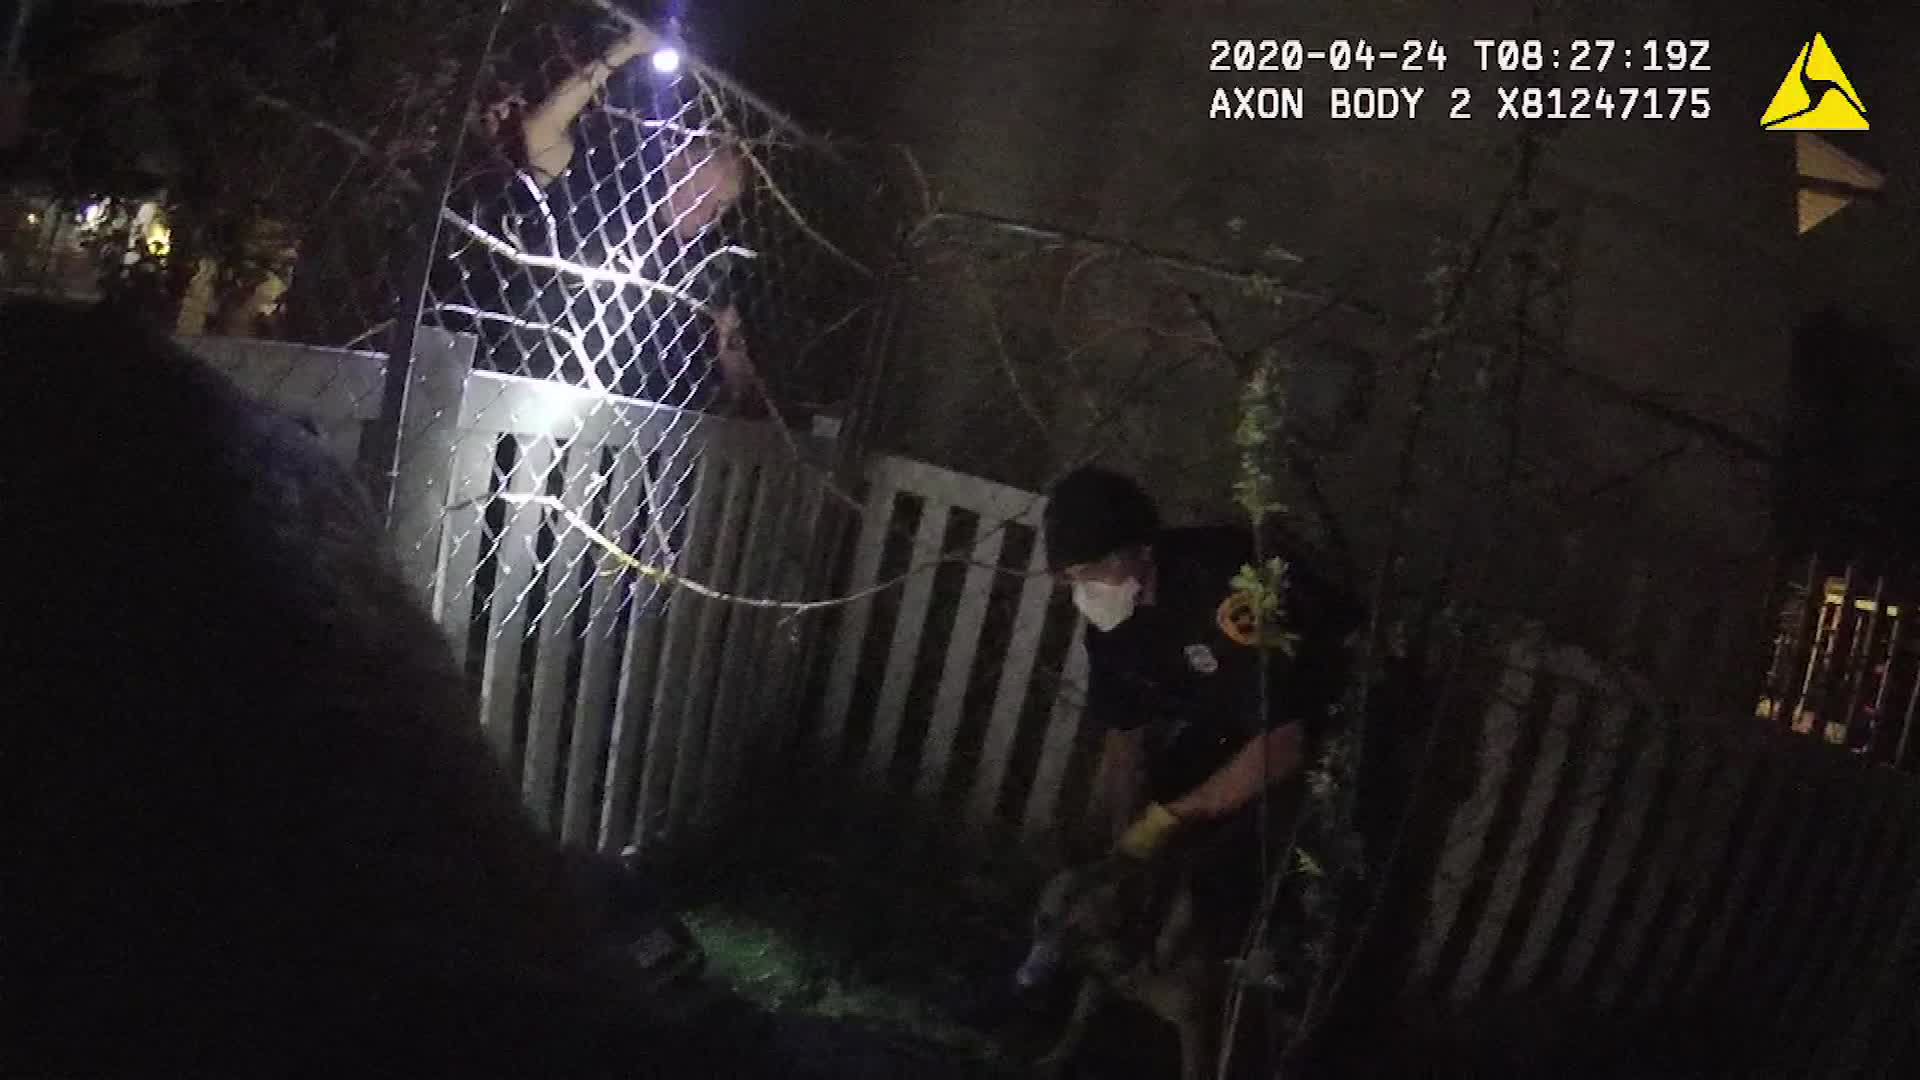 Utah officer charged after allegedly ordering K9 to attack Black man who was surrendering